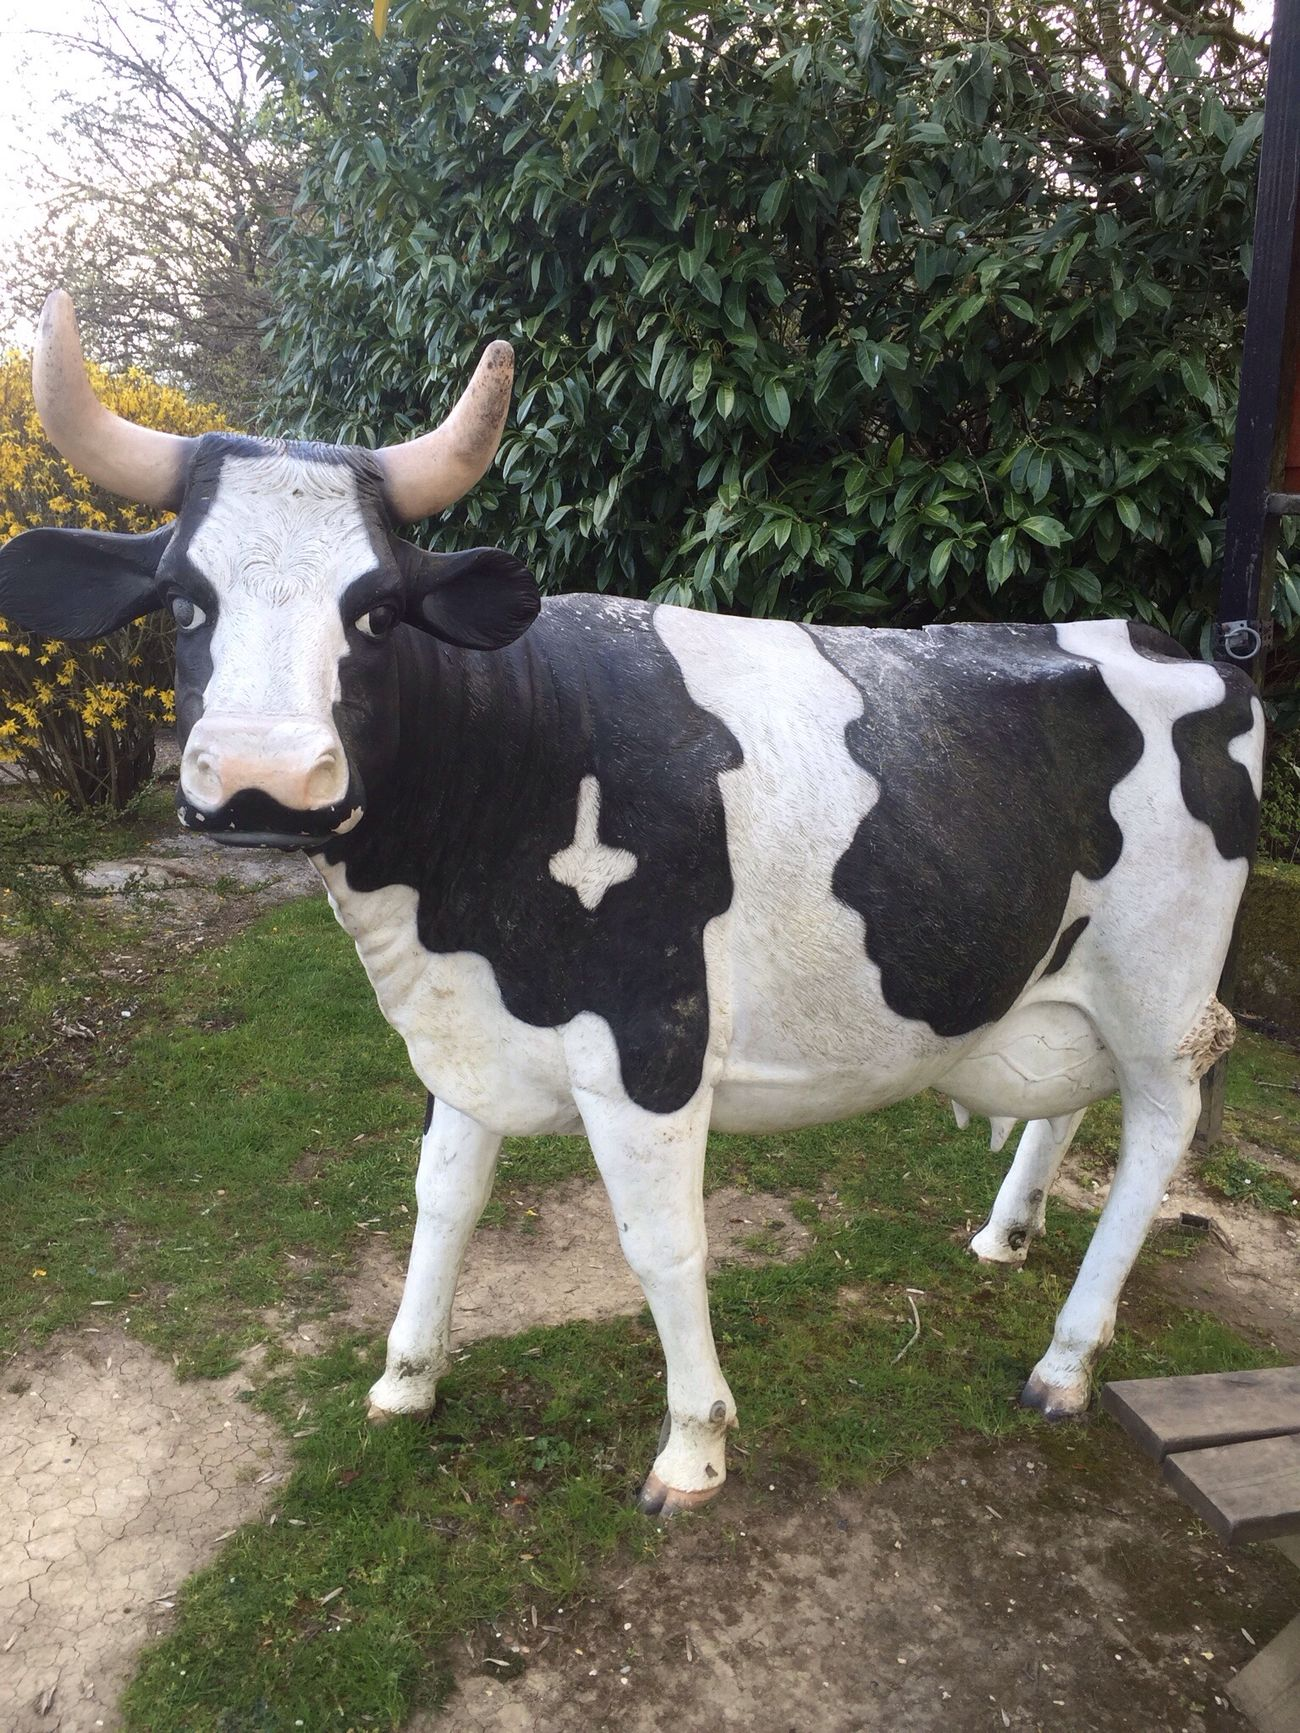 Especially for Nefelibata @markmyword In England we have REAL plastic cows!!!! So there!!!!!